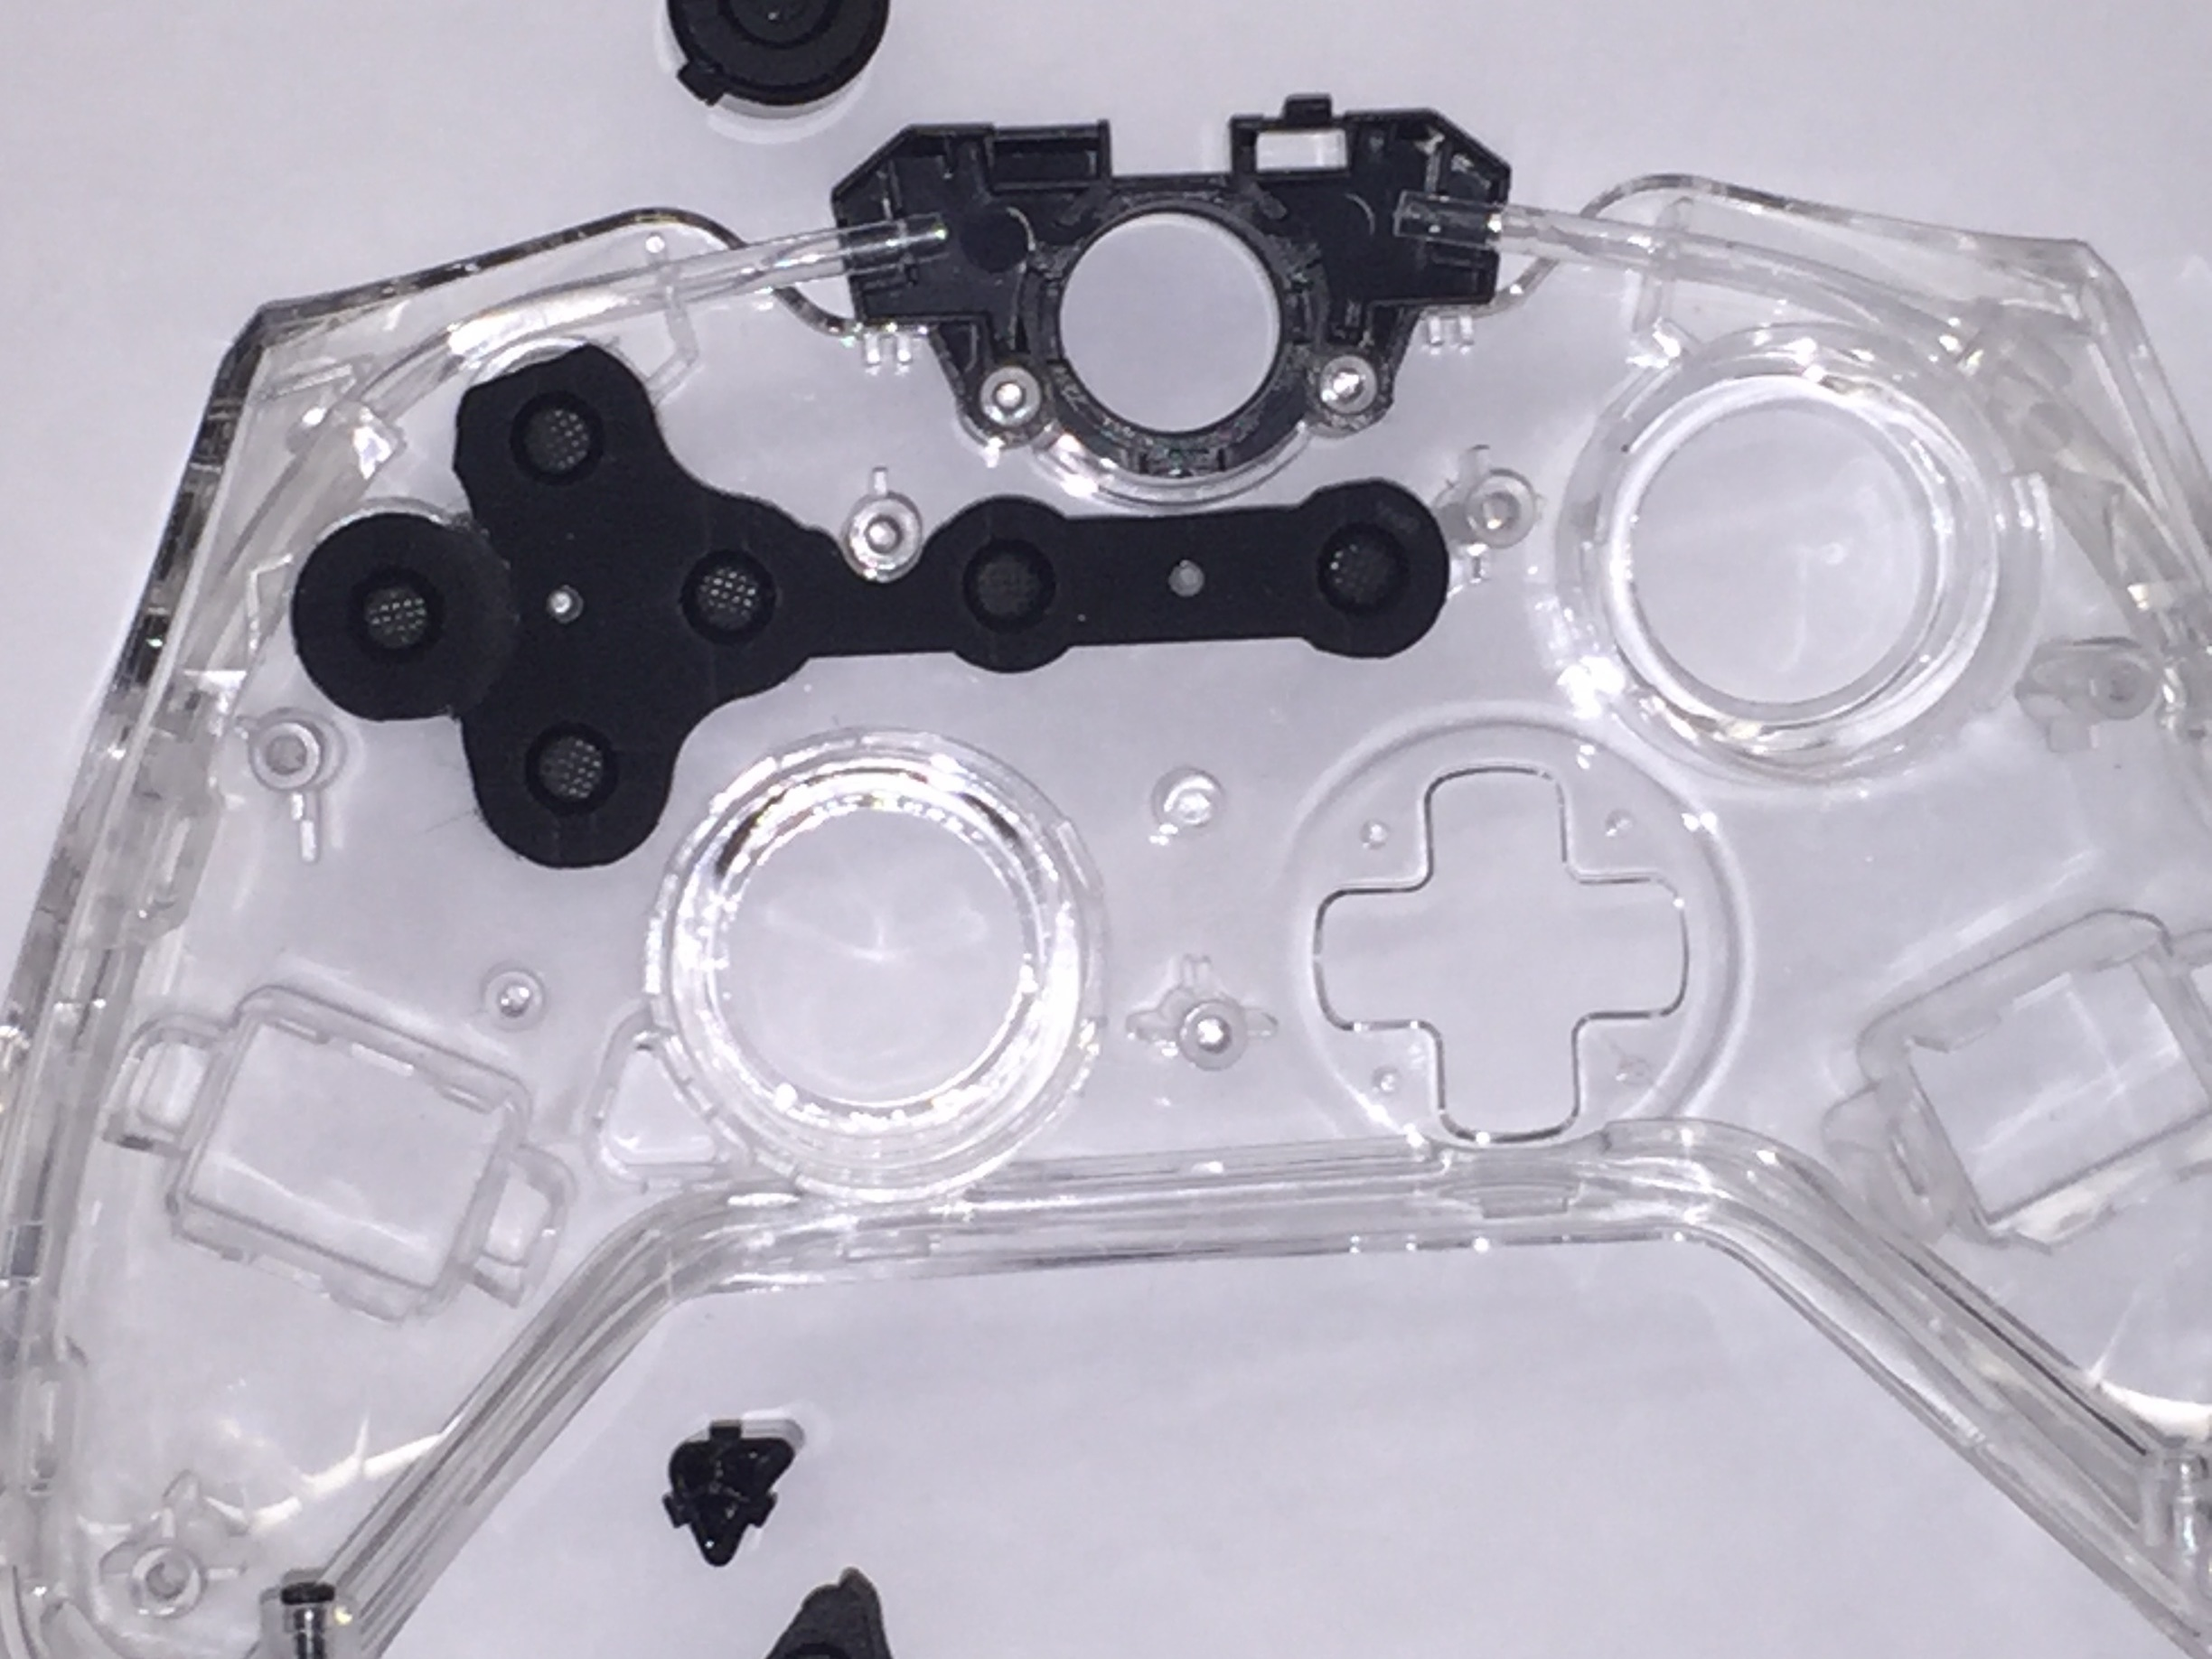 Does The Xbox One Afterglow Controller Use The Same